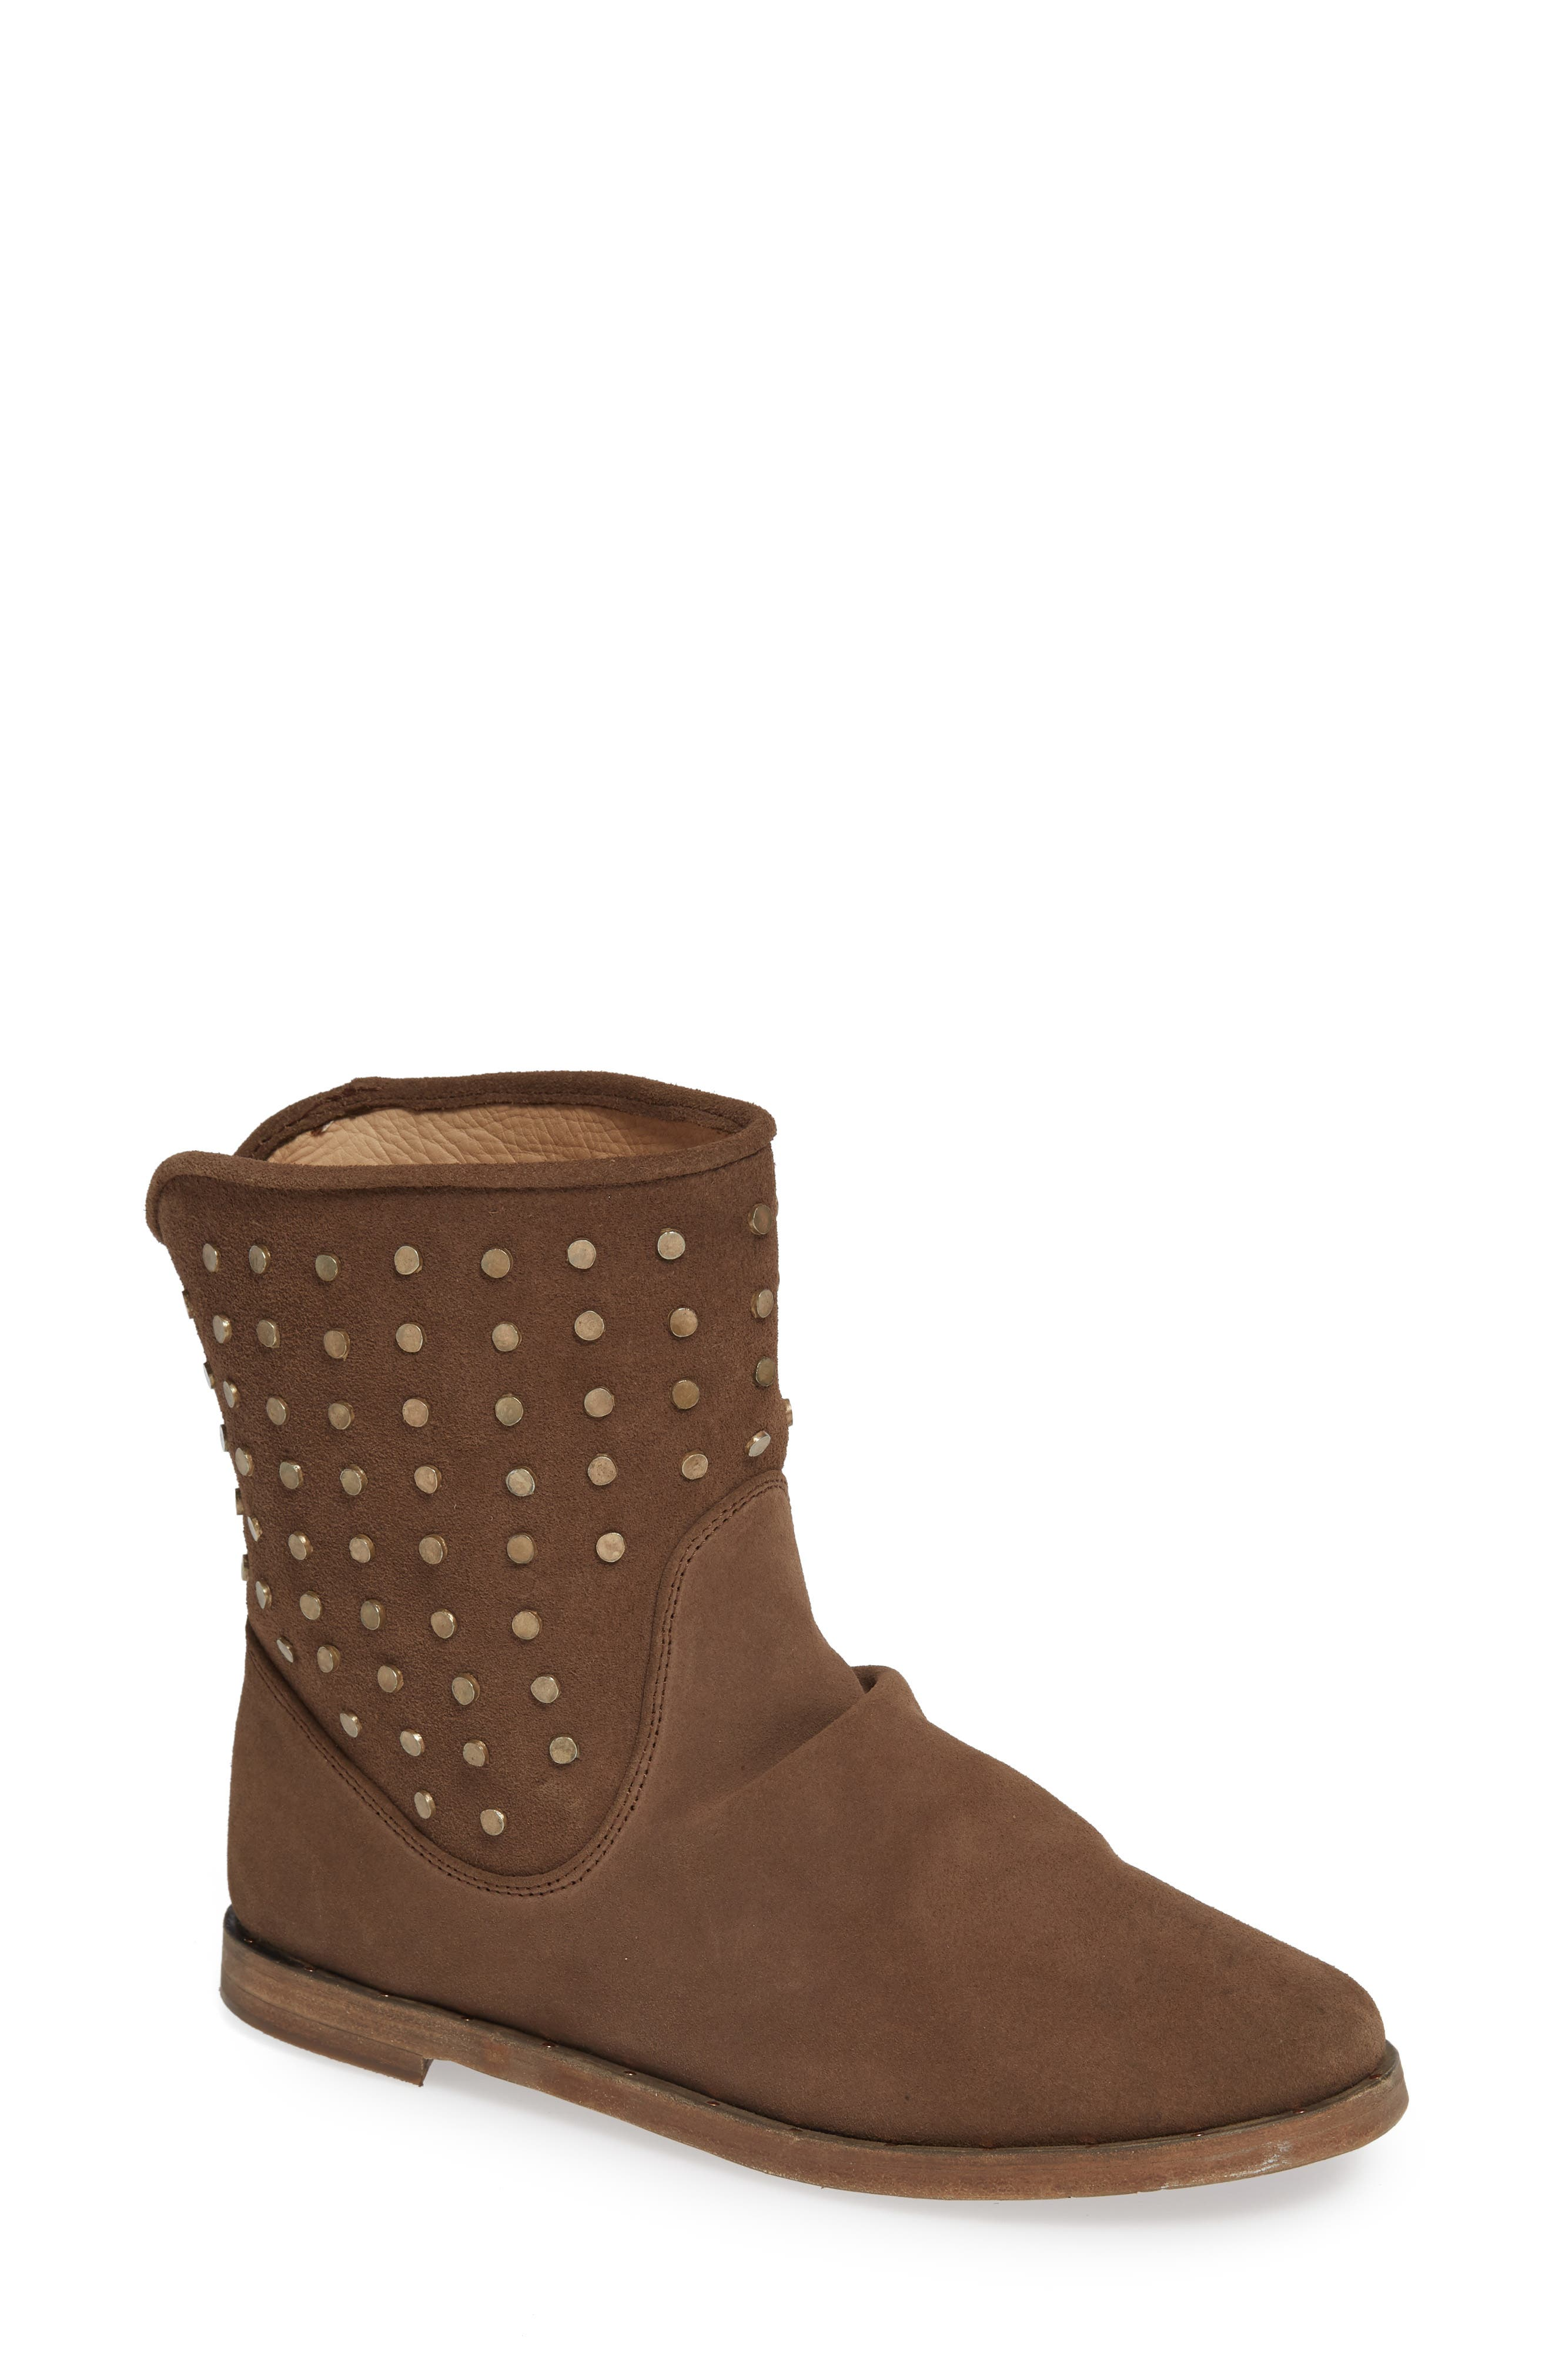 BEEK Junco Studs Slouchy Bootie in Taupe Oiled Suede